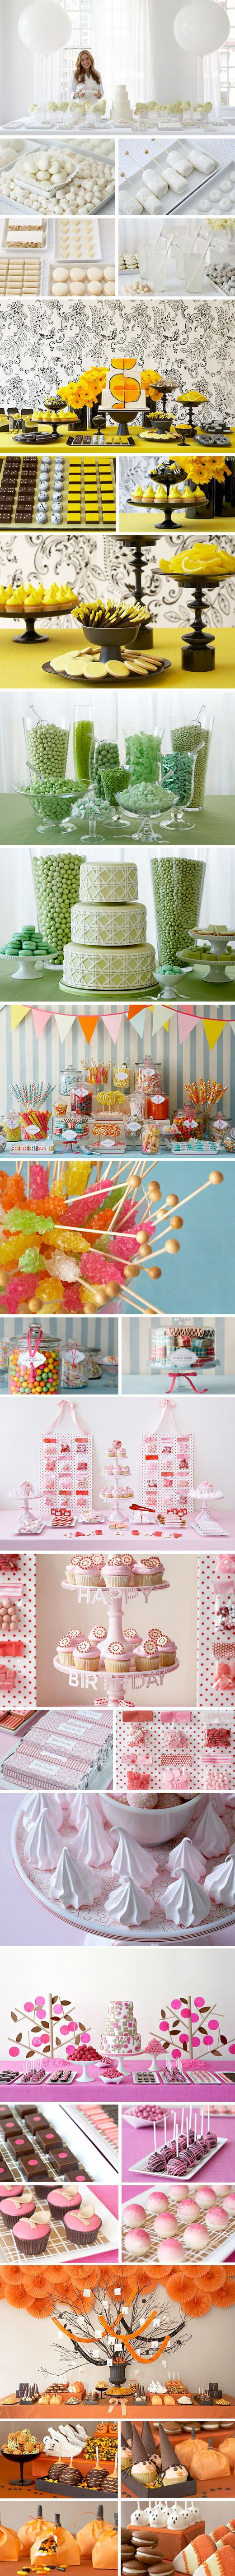 candy displays